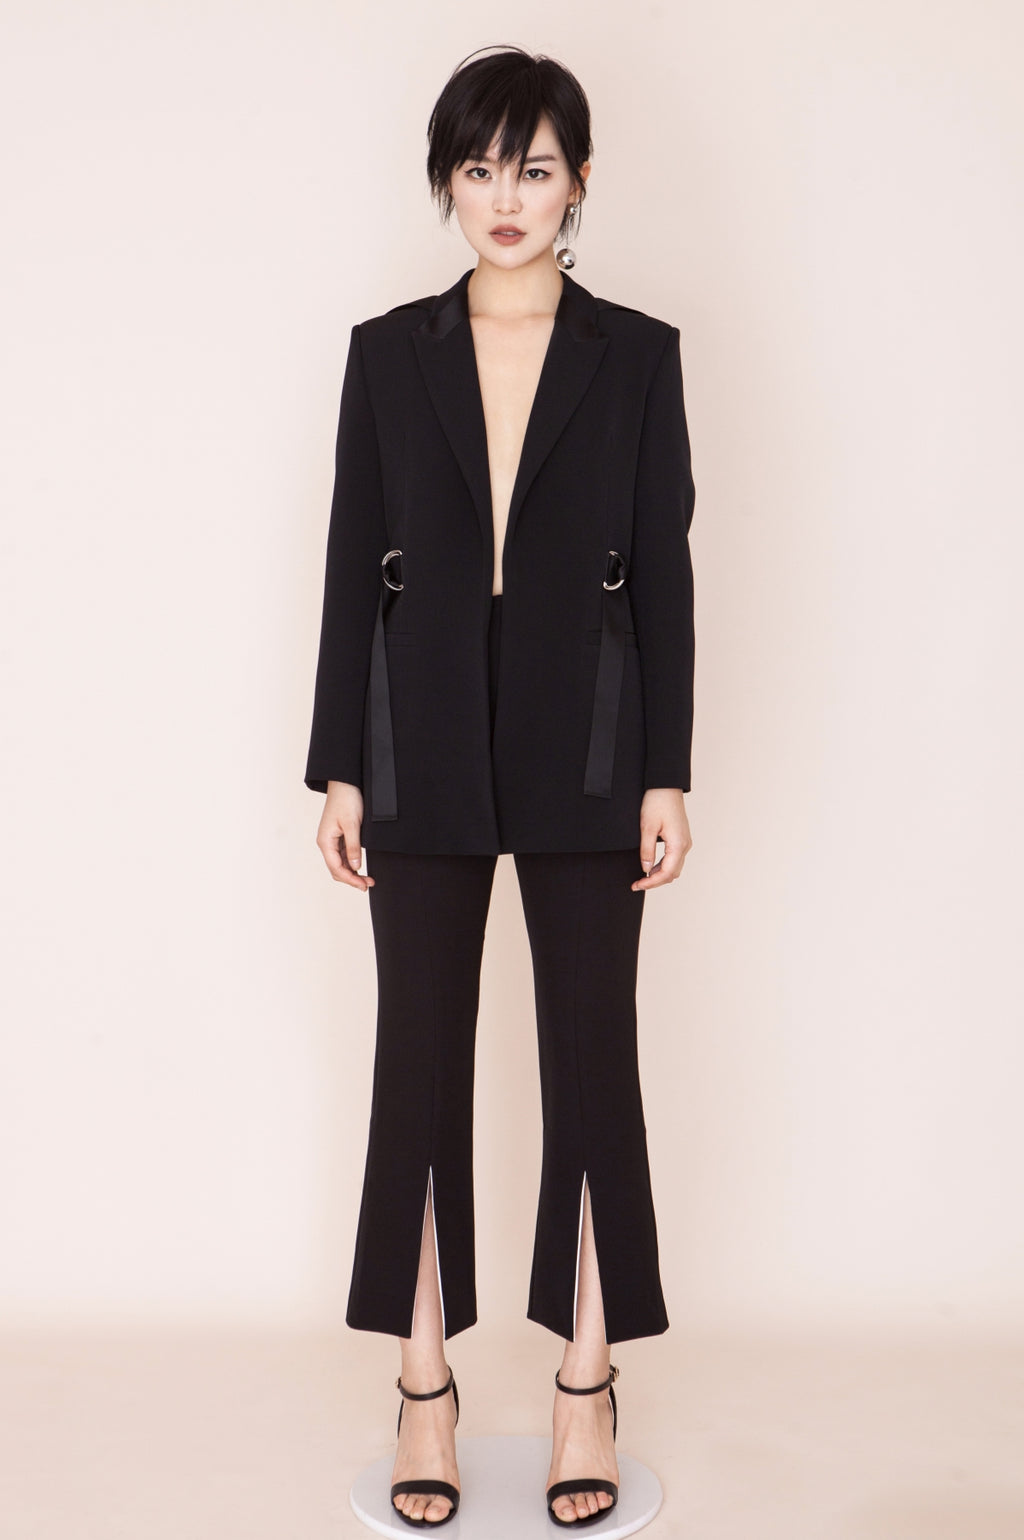 Fever Wang ribbon suit